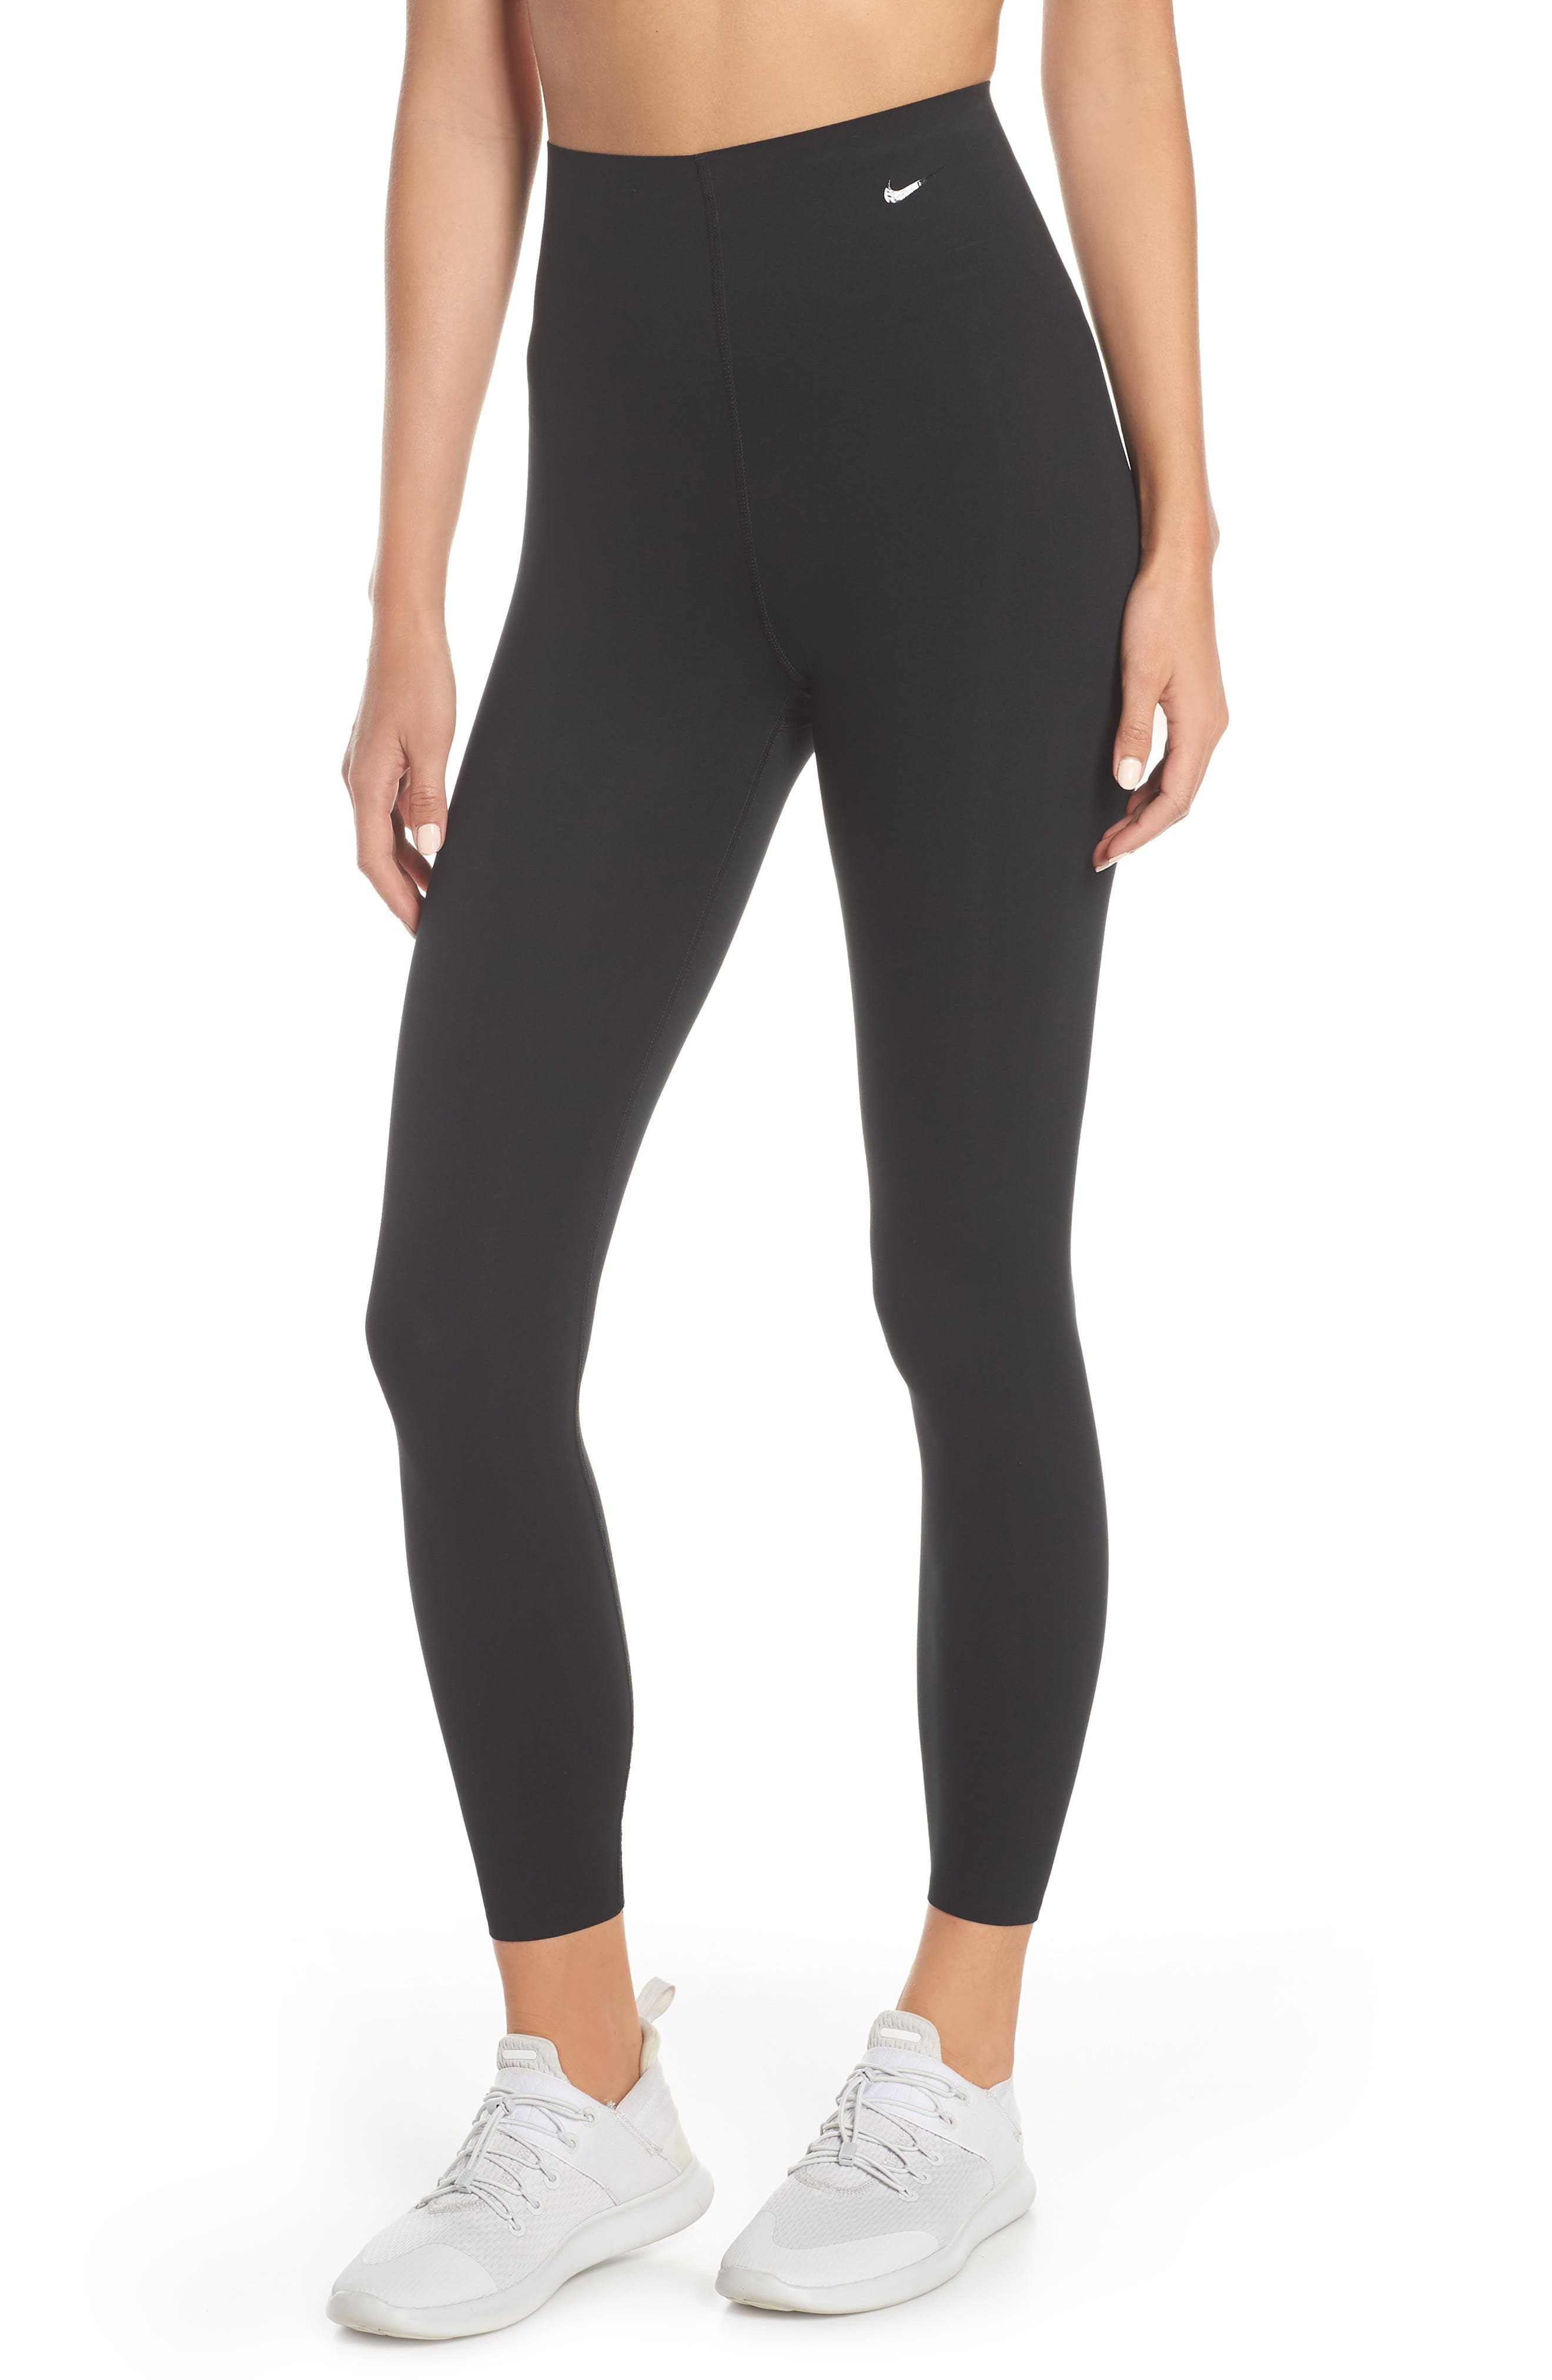 NIKE Dry Sculpt Lux Tights, Main, color, BLACK/ CLEAR